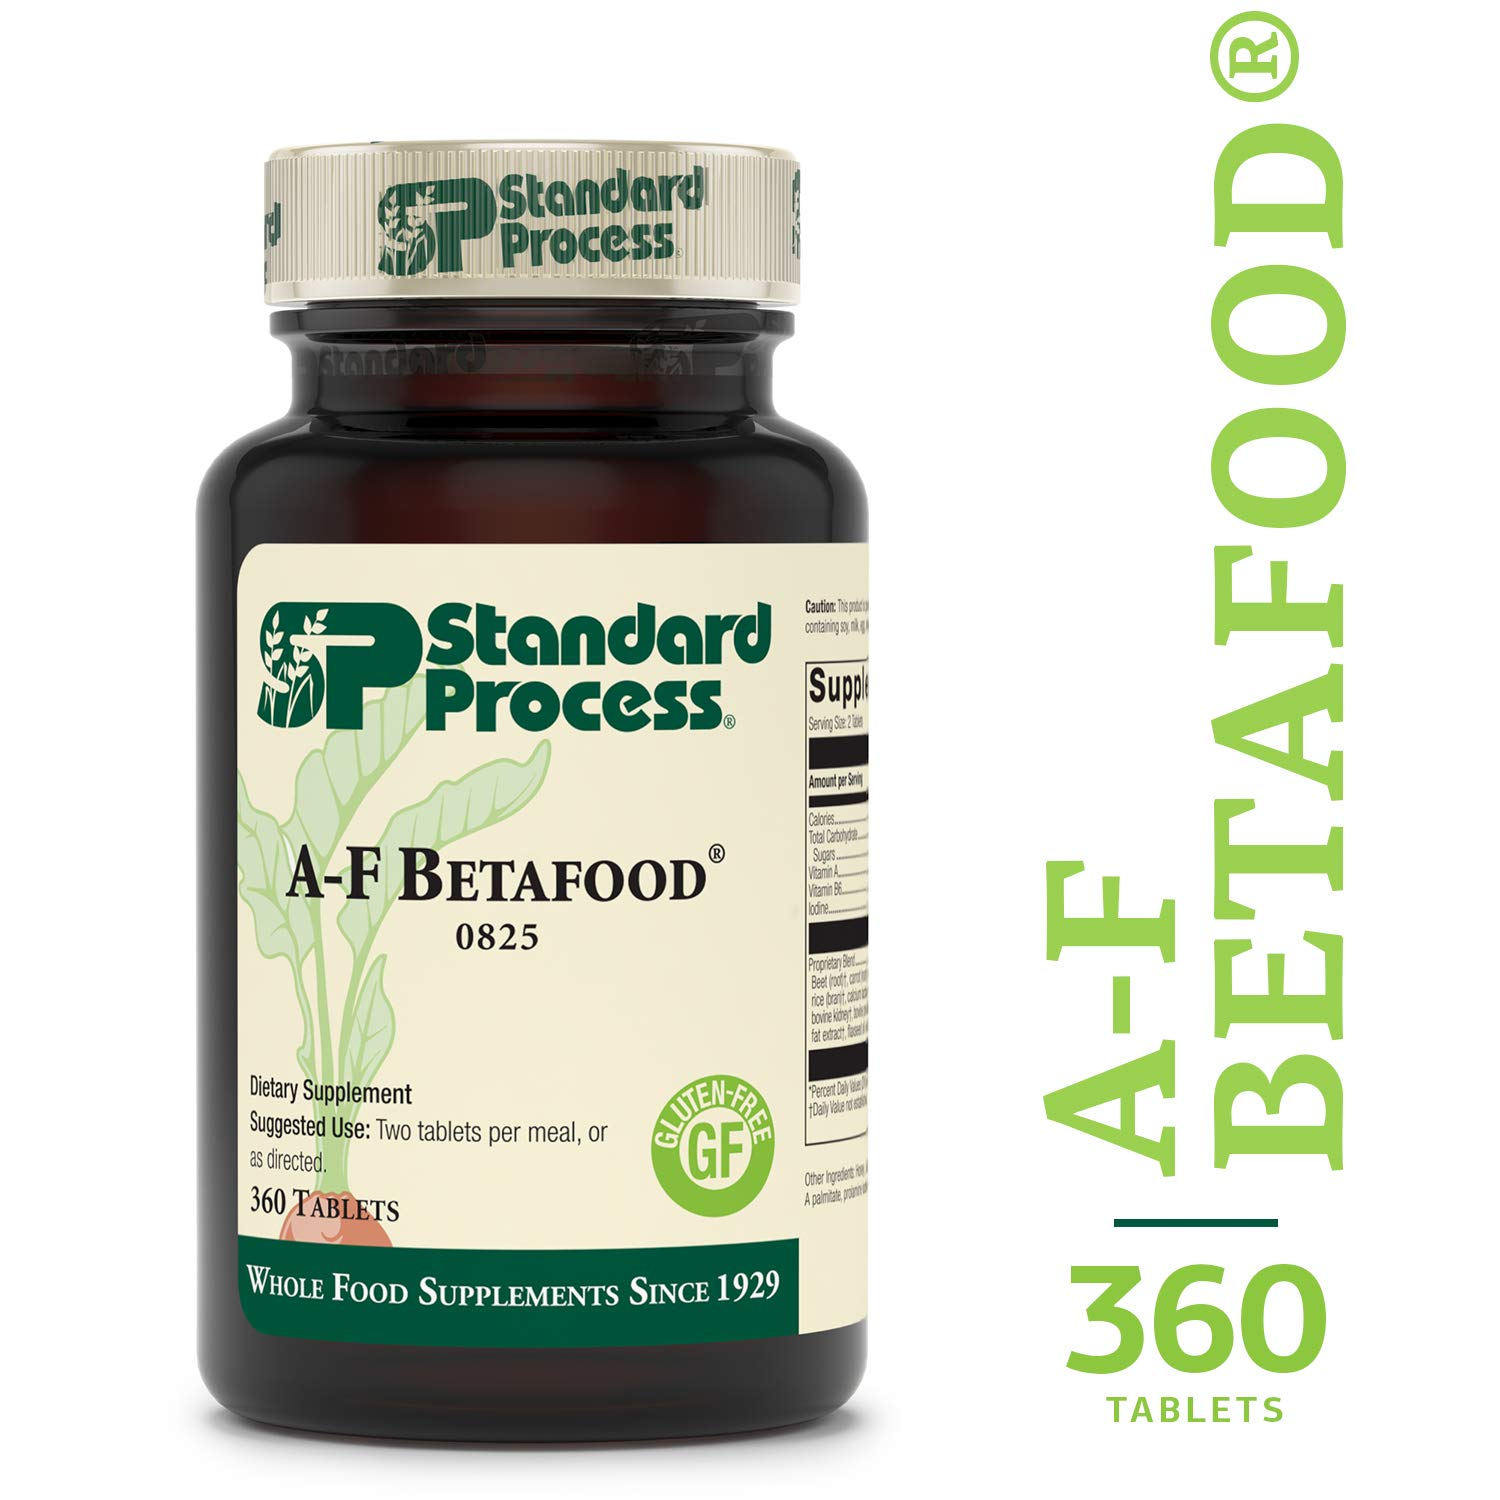 Standard Process - A-F Betafood - Whole Food Gluten Free Digestive Supplement, 1500 IU Vitamin A, Supports Healthy Fat Digestion, Cholesterol Metabolism, and Healthy Bowel Function - 360 Tablets by Standard Process